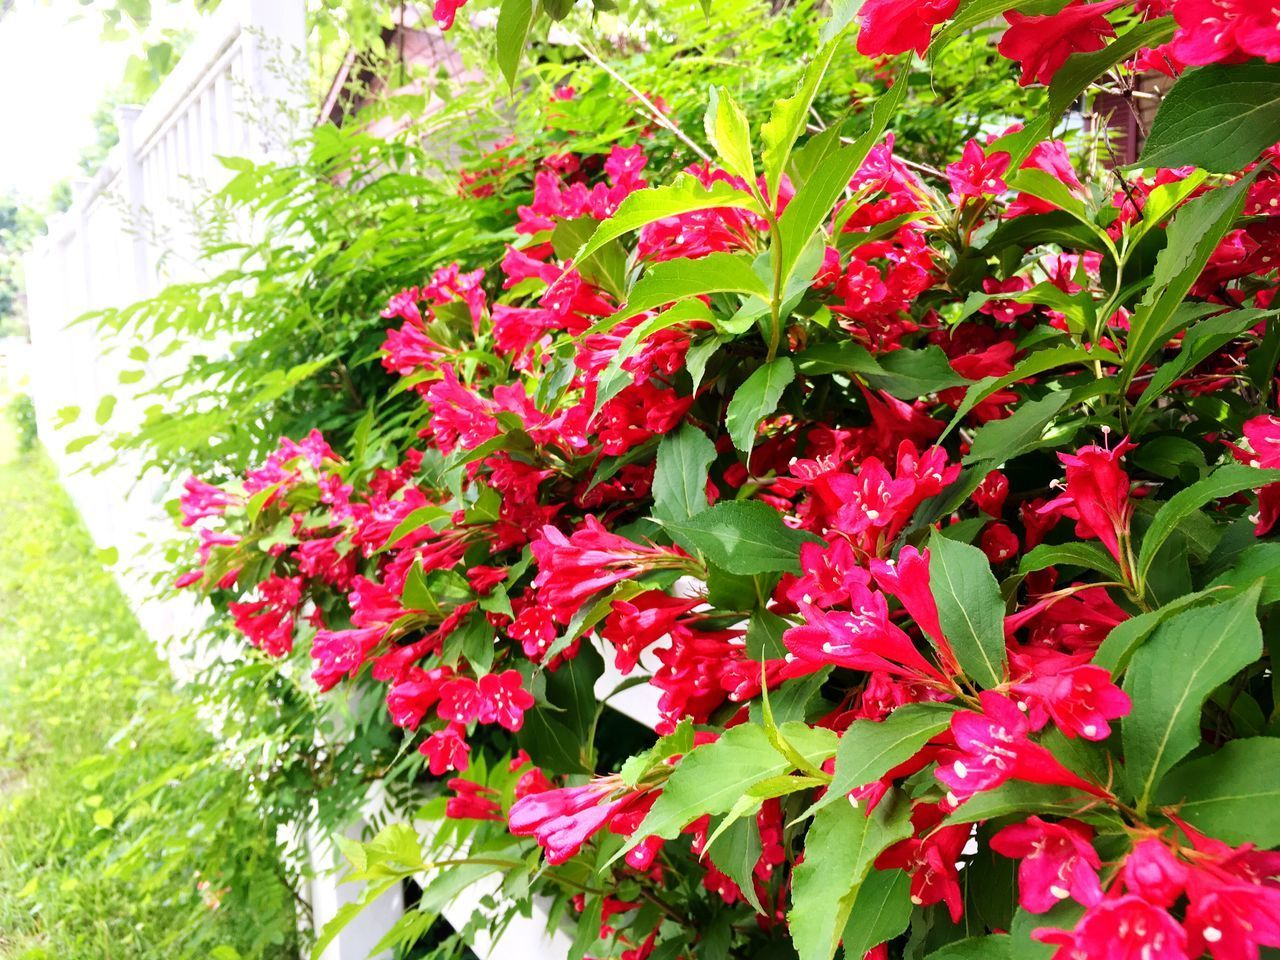 growth, red, nature, plant, foliage, leaf, spring, summer, flower, beauty in nature, no people, outdoors, freshness, day